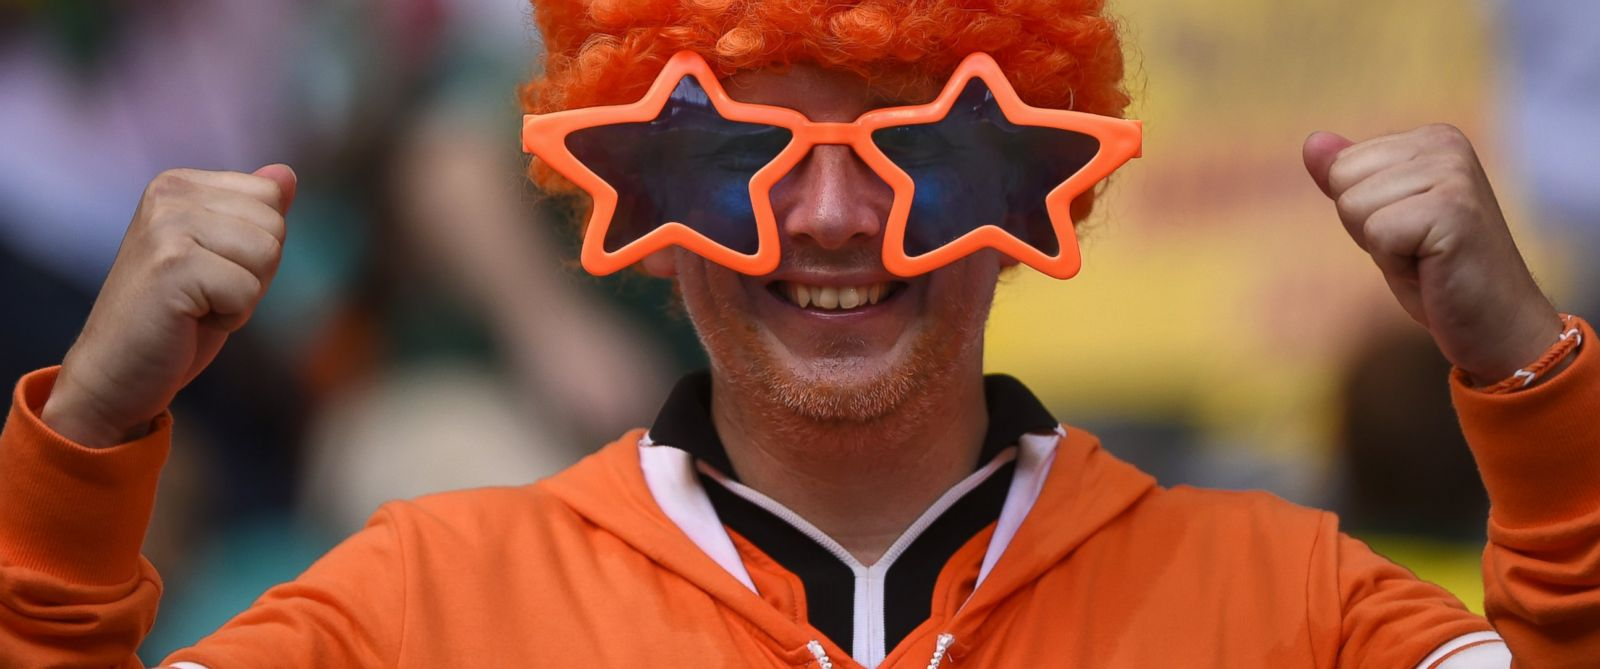 PHOTO: A Netherlands supporter cheers for his team ahead of the quarter-final football match between Netherlands and Costa Rica at the Fonte Nova Arena in Salvador during the 2014 FIFA World Cup on July 5, 2014.